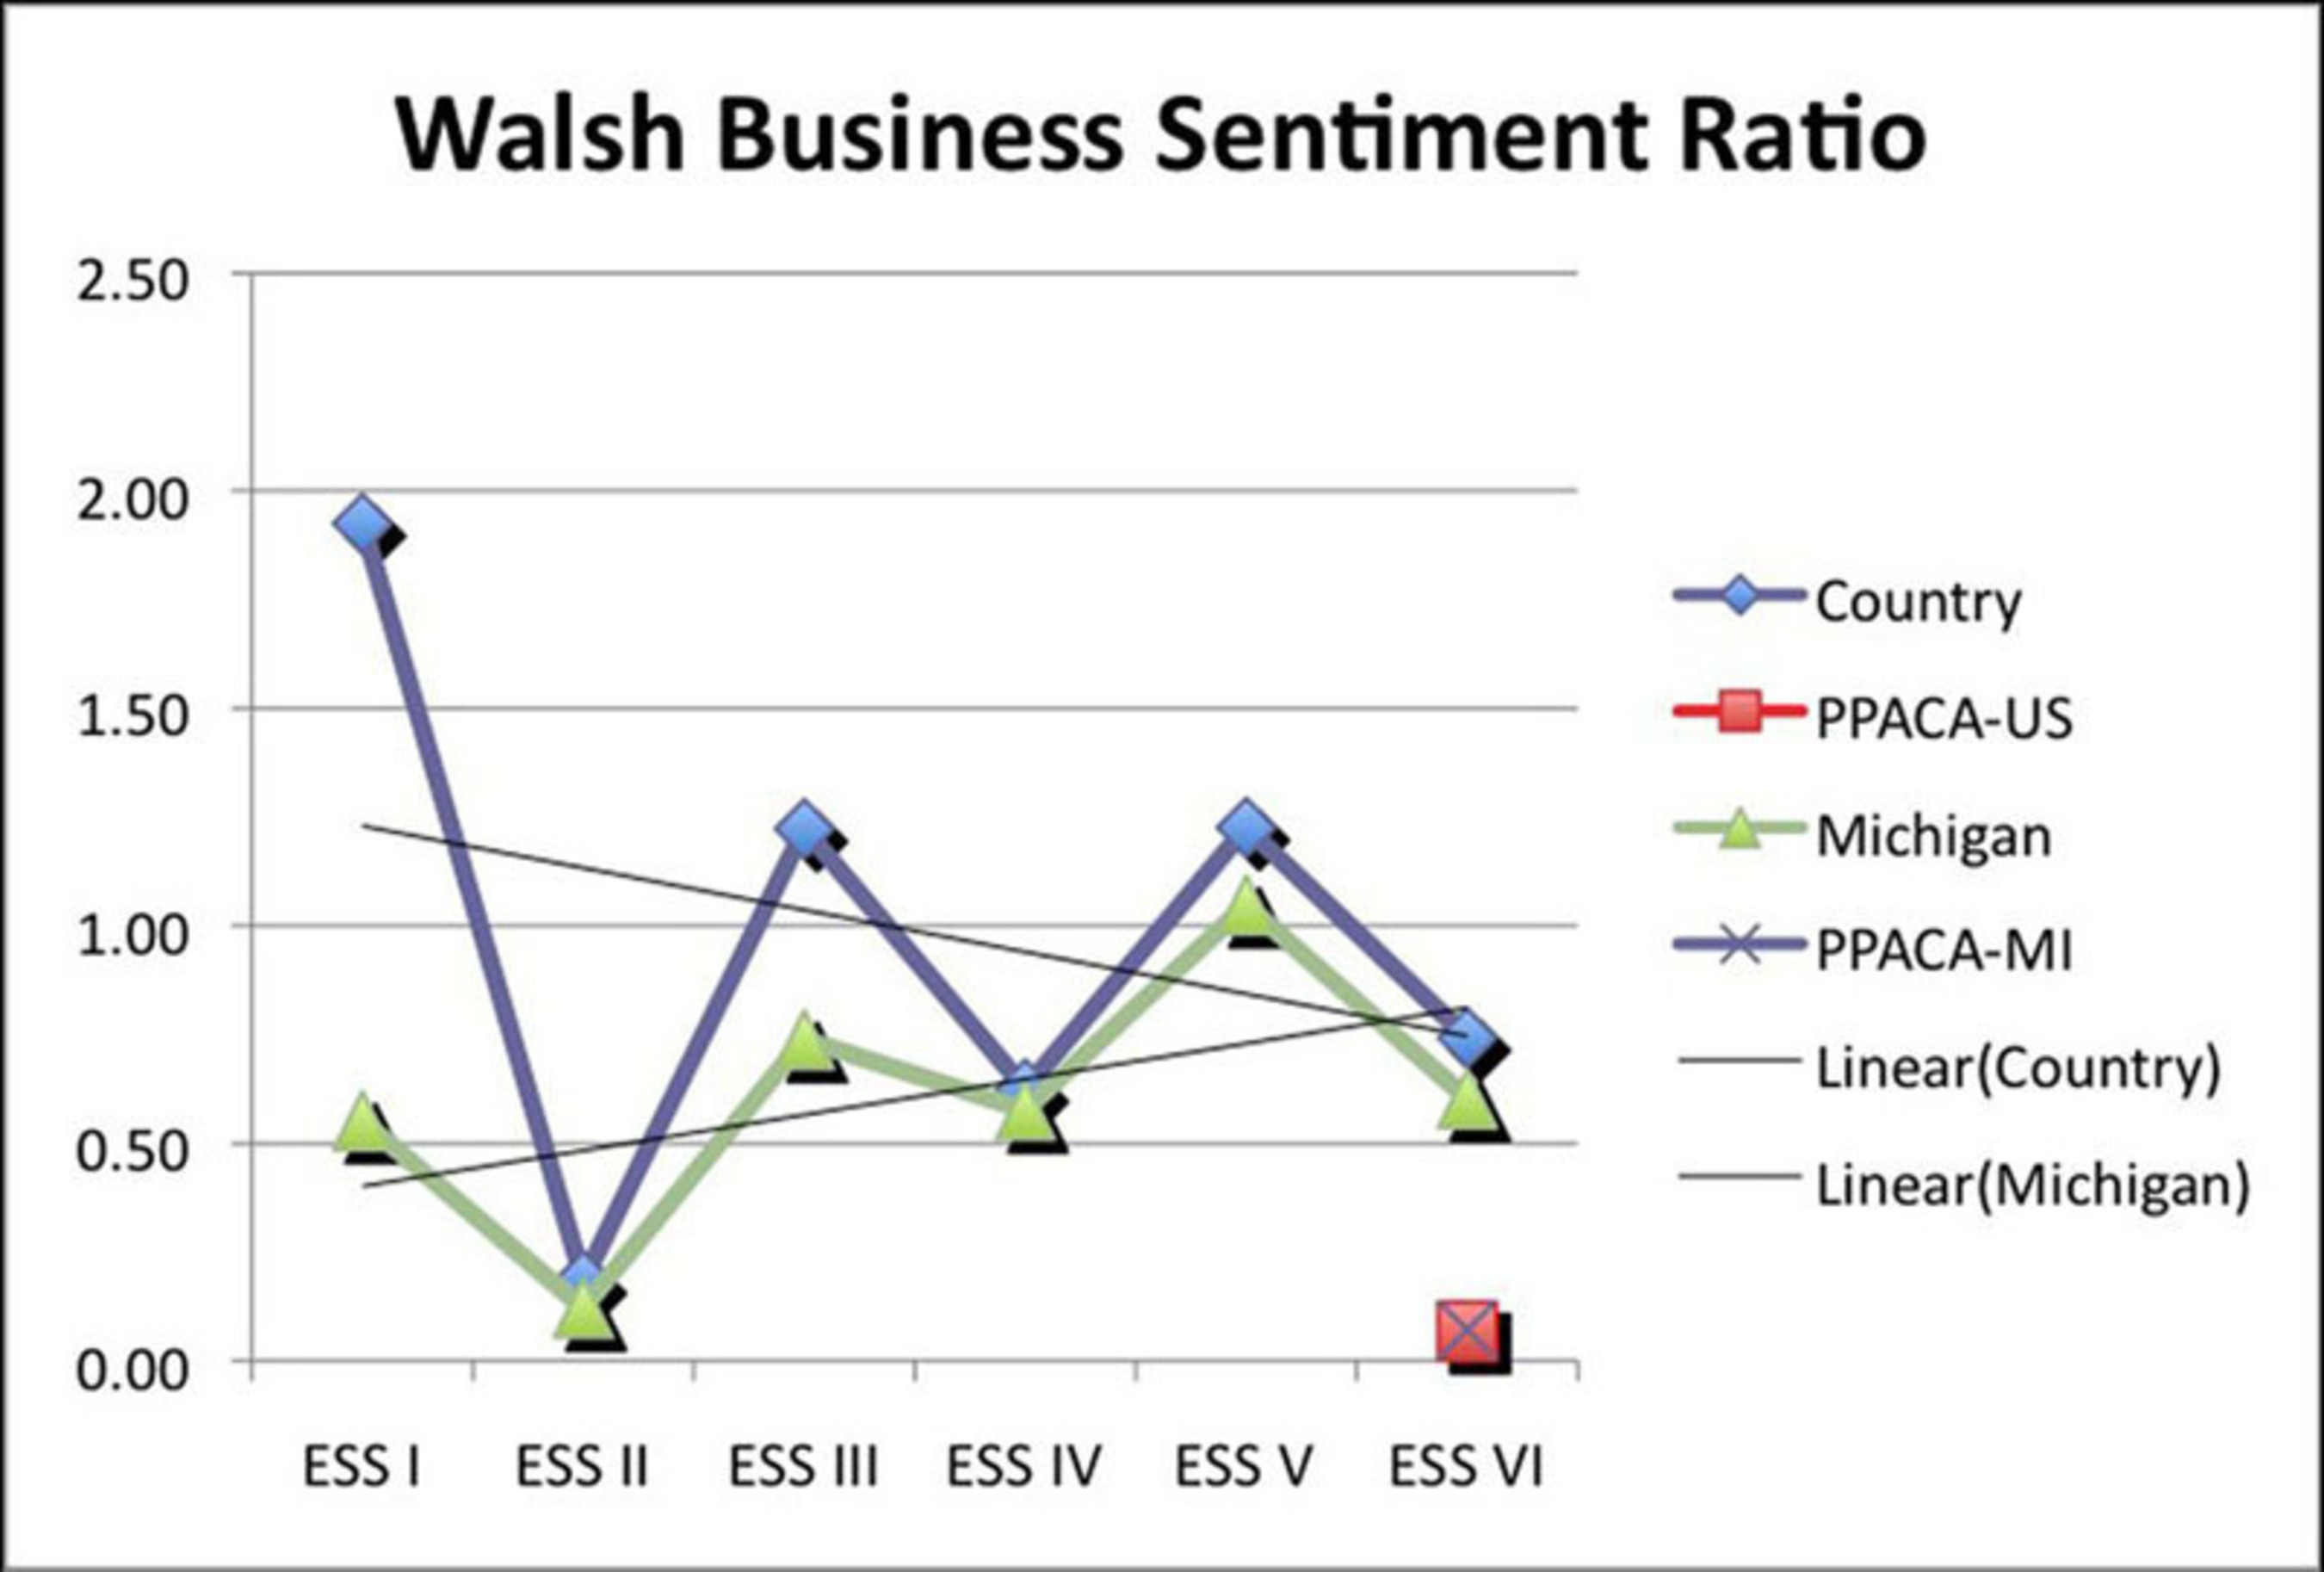 Ratios since 2011 and Walsh alumni sentiment about the impact of Obamacare on business conditions in the next 12 months. (PRNewsFoto/Walsh College)